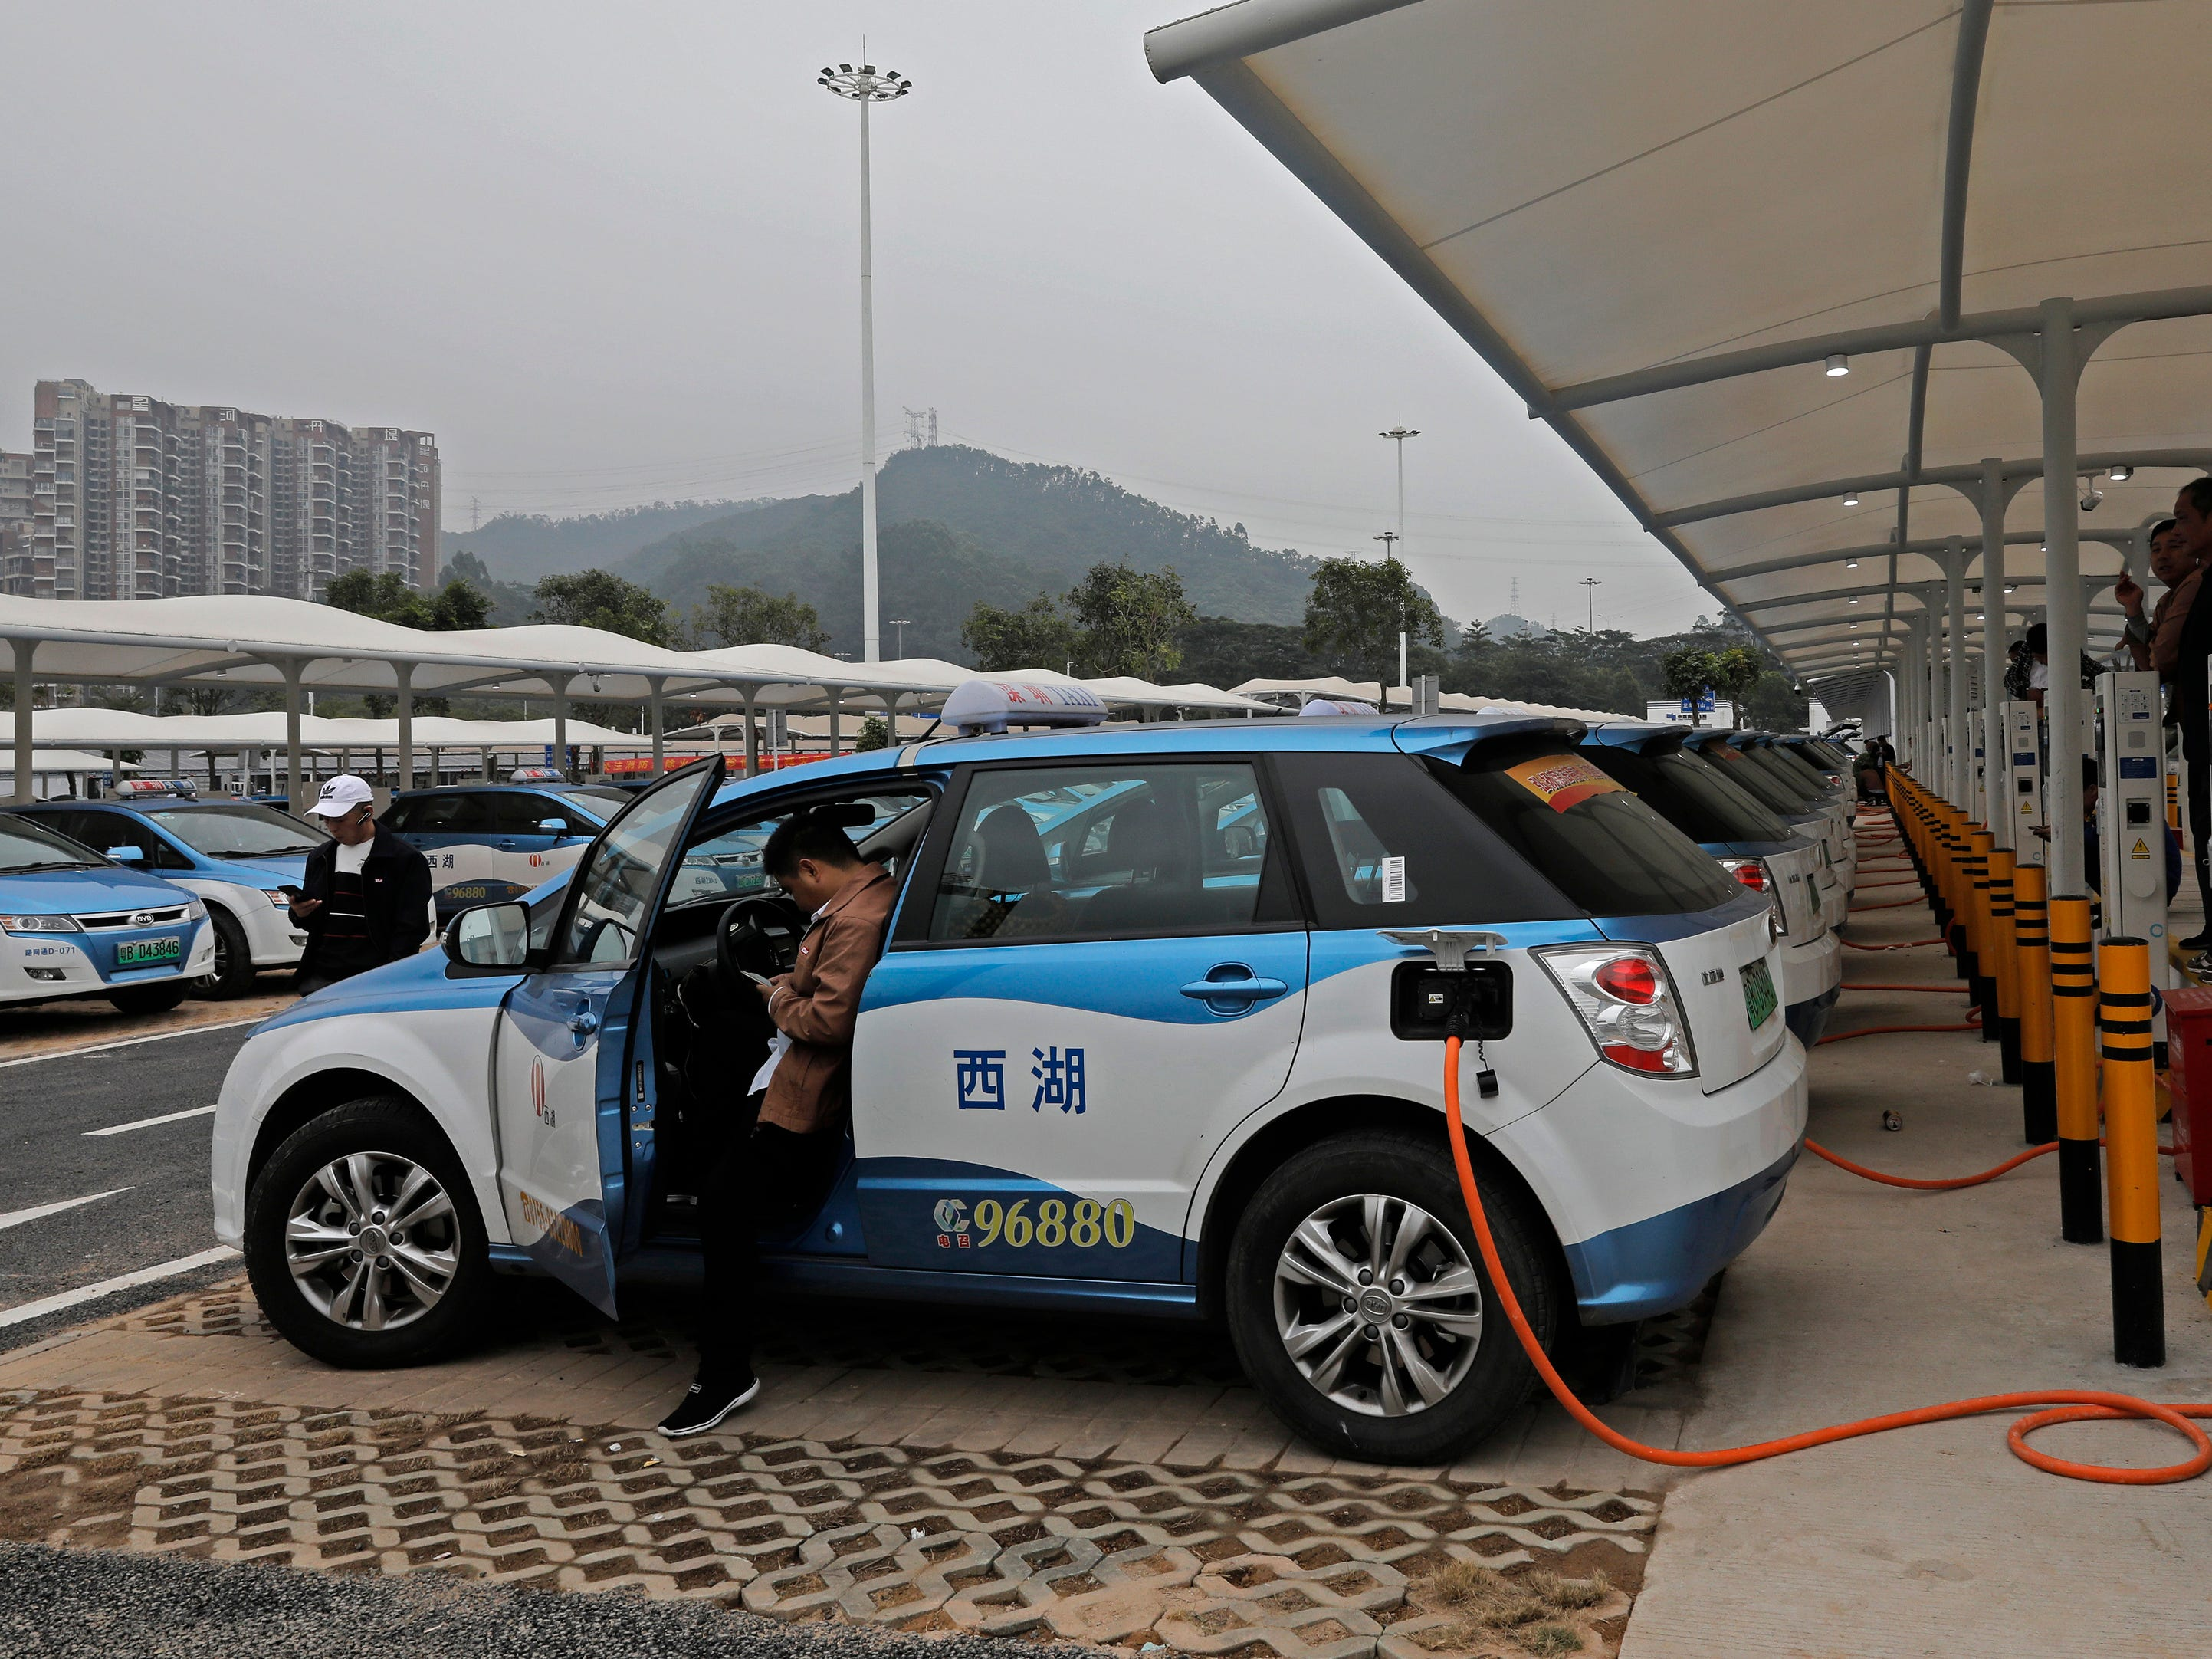 China threatens to sideline U.S. automakers in booming EV tech